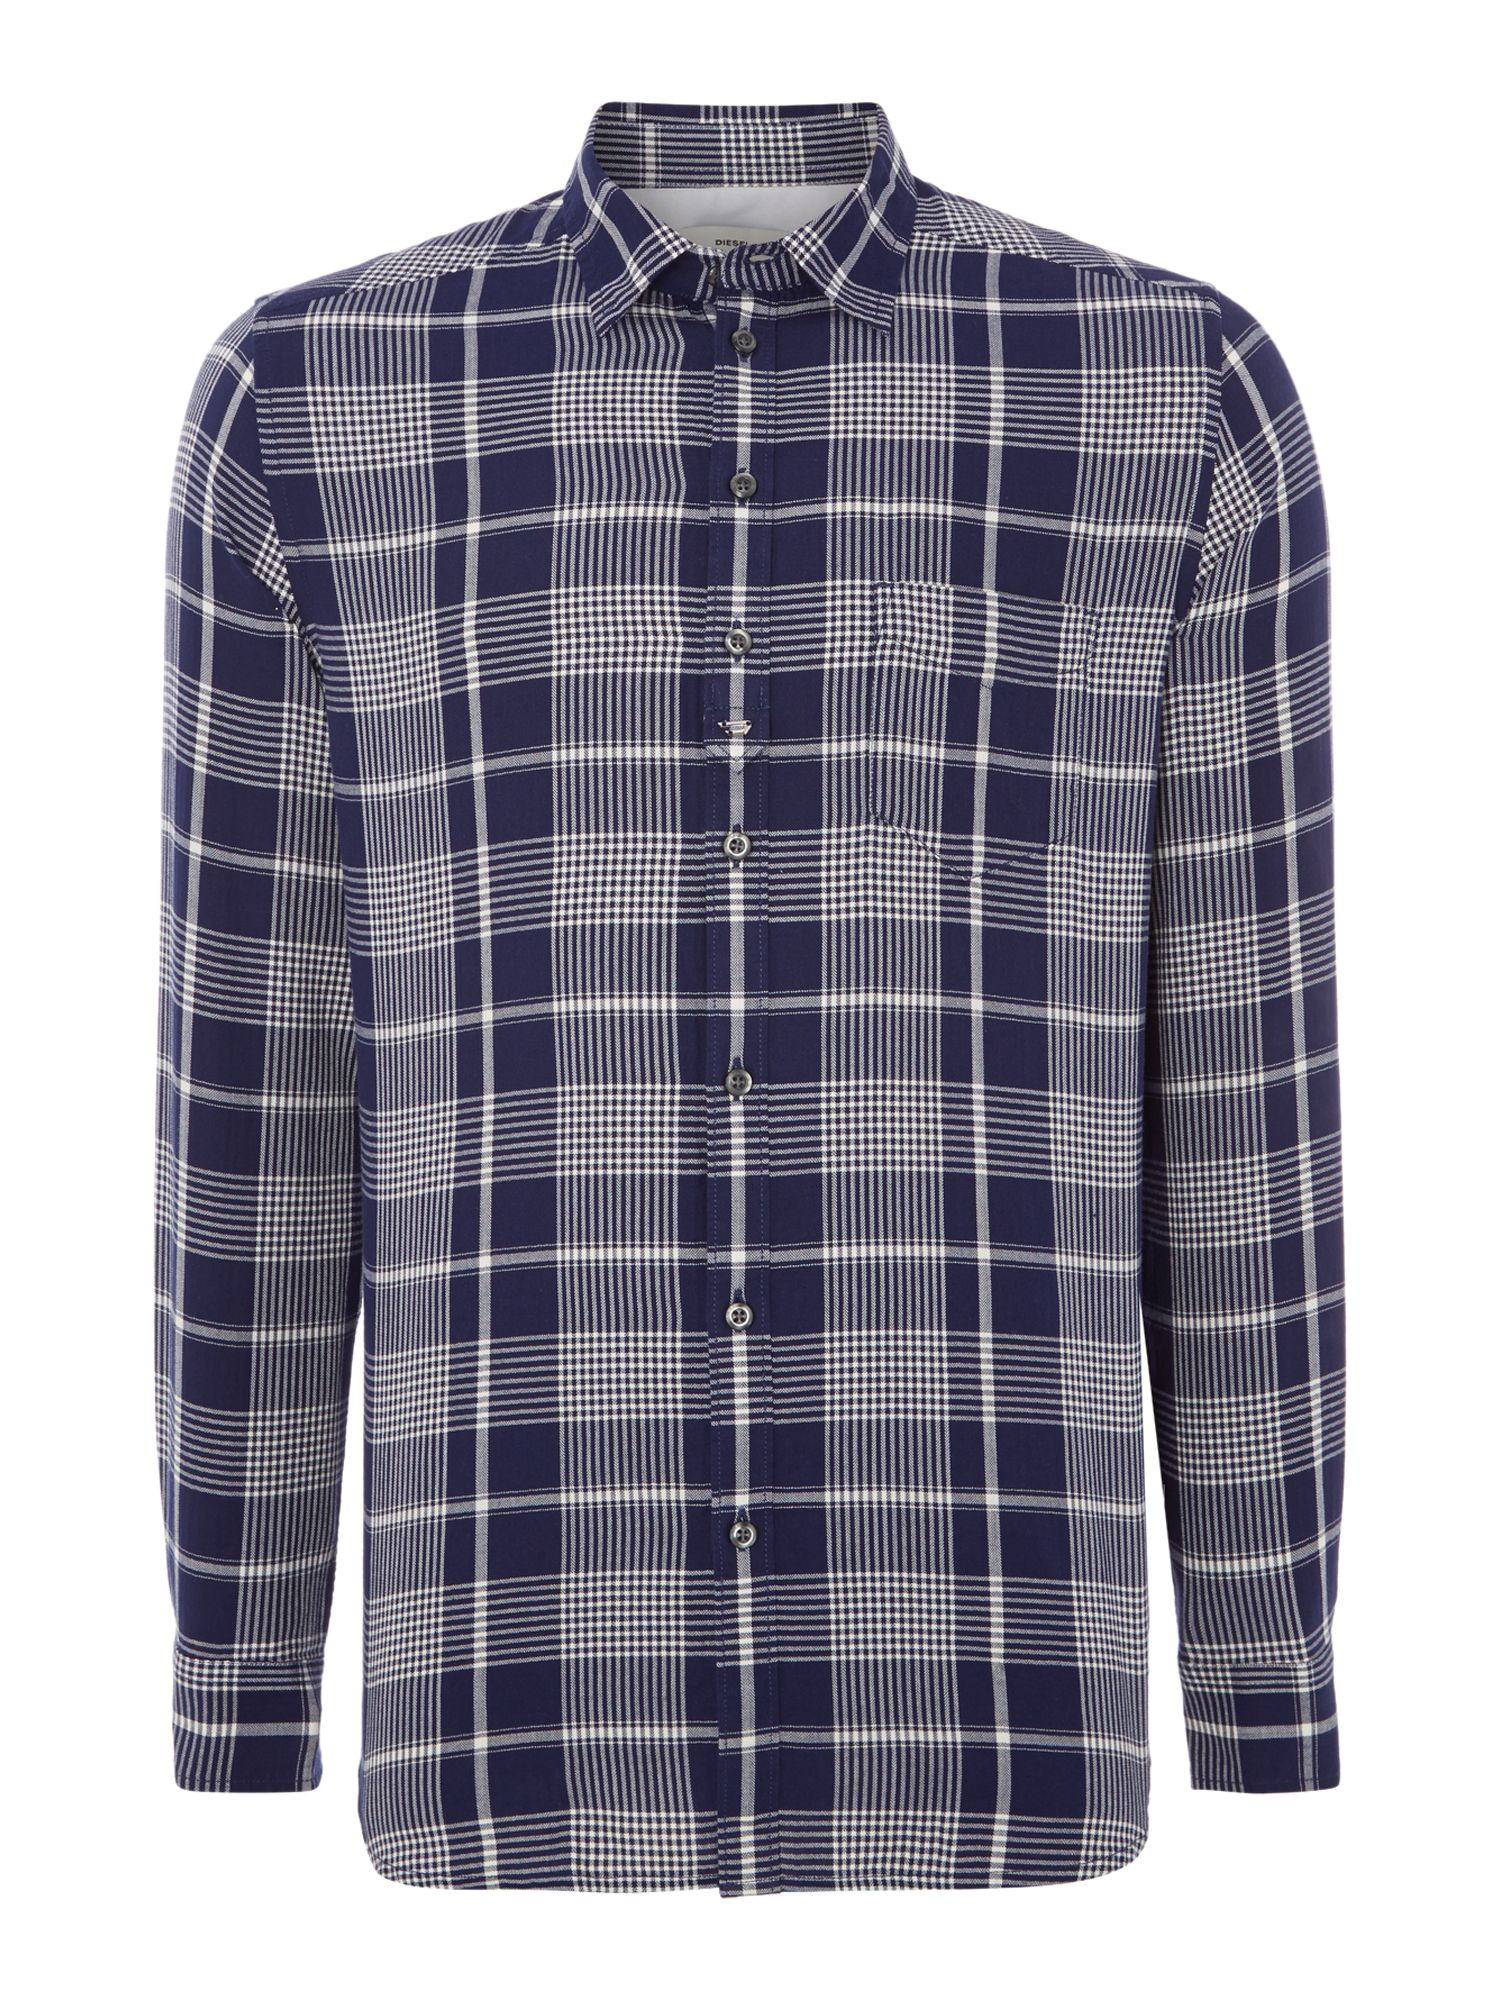 BILLABONG Baja Light Gray Mens Hooded Flannel Shirt $ More Colors. VALOR Tellin Mens Flannel Shirt $ $ SALE! SHOUTHOUSE Granite Mens Flannel Shirt $ $ Men's Flannel Shirts. We bet every guy wishes they had at least one or two more men's flannel shirts to see them through the winter. Consider making these a daily.